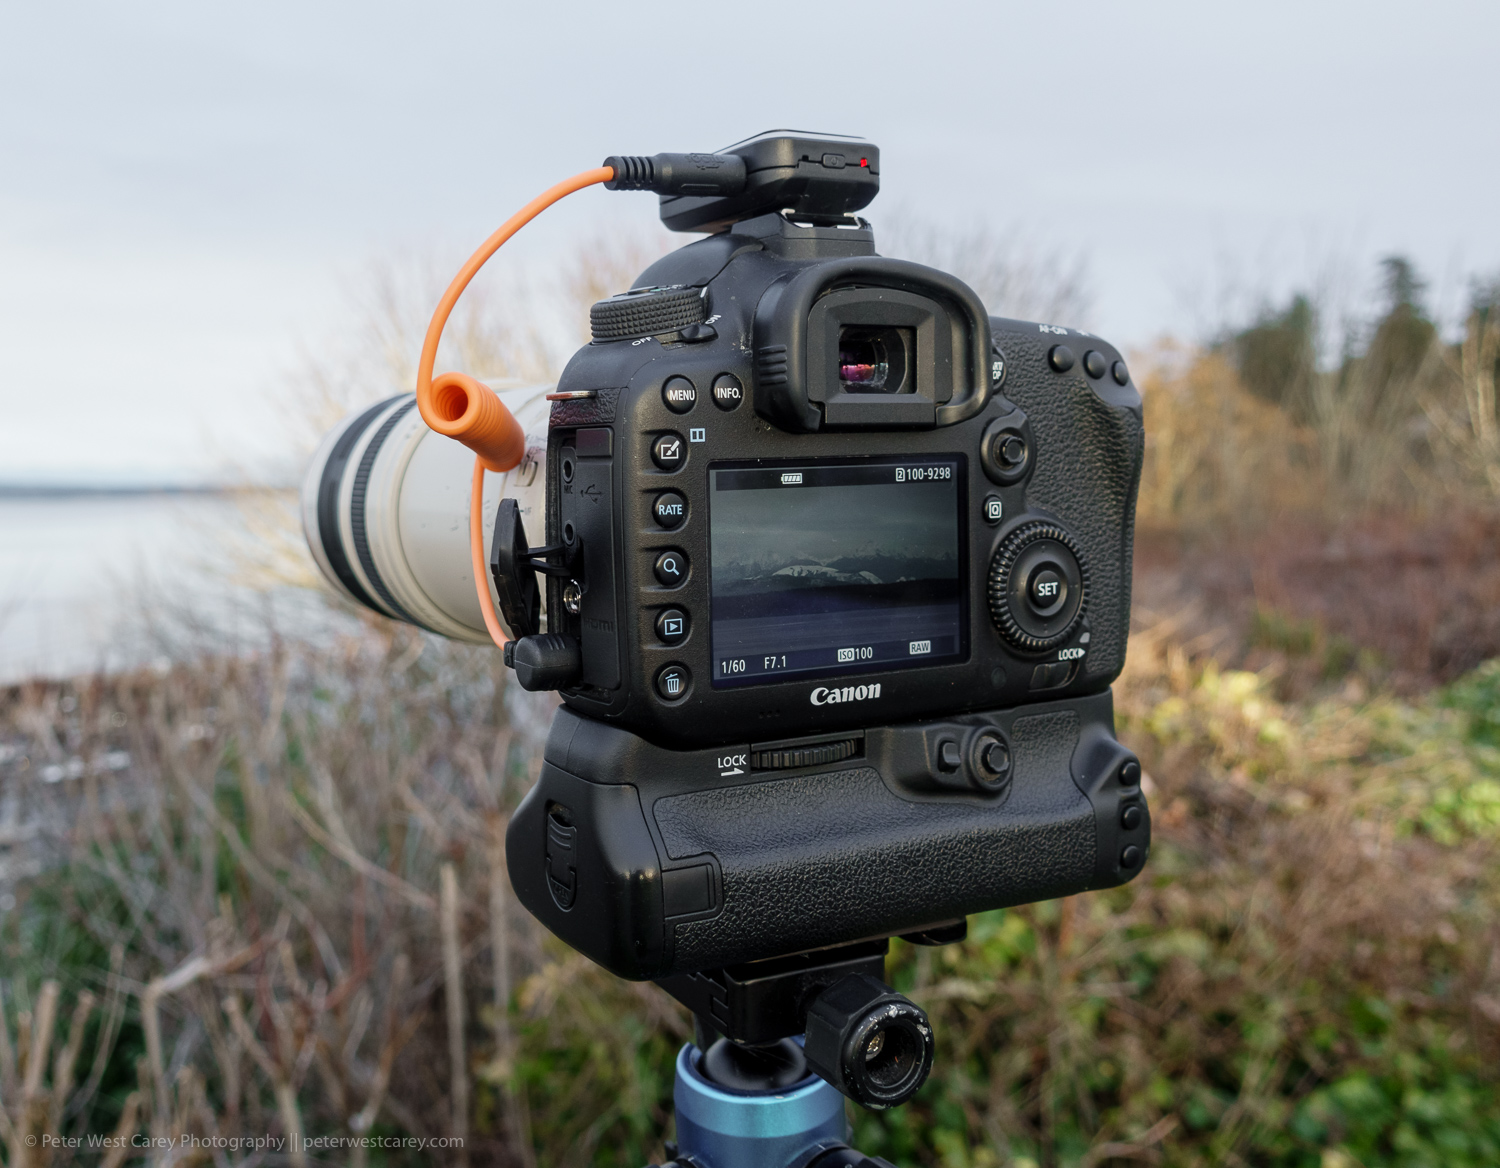 MIOPS Mobile RemotePlus Review - Taking Control of Your Camera in Ways a Cable Release Never Can